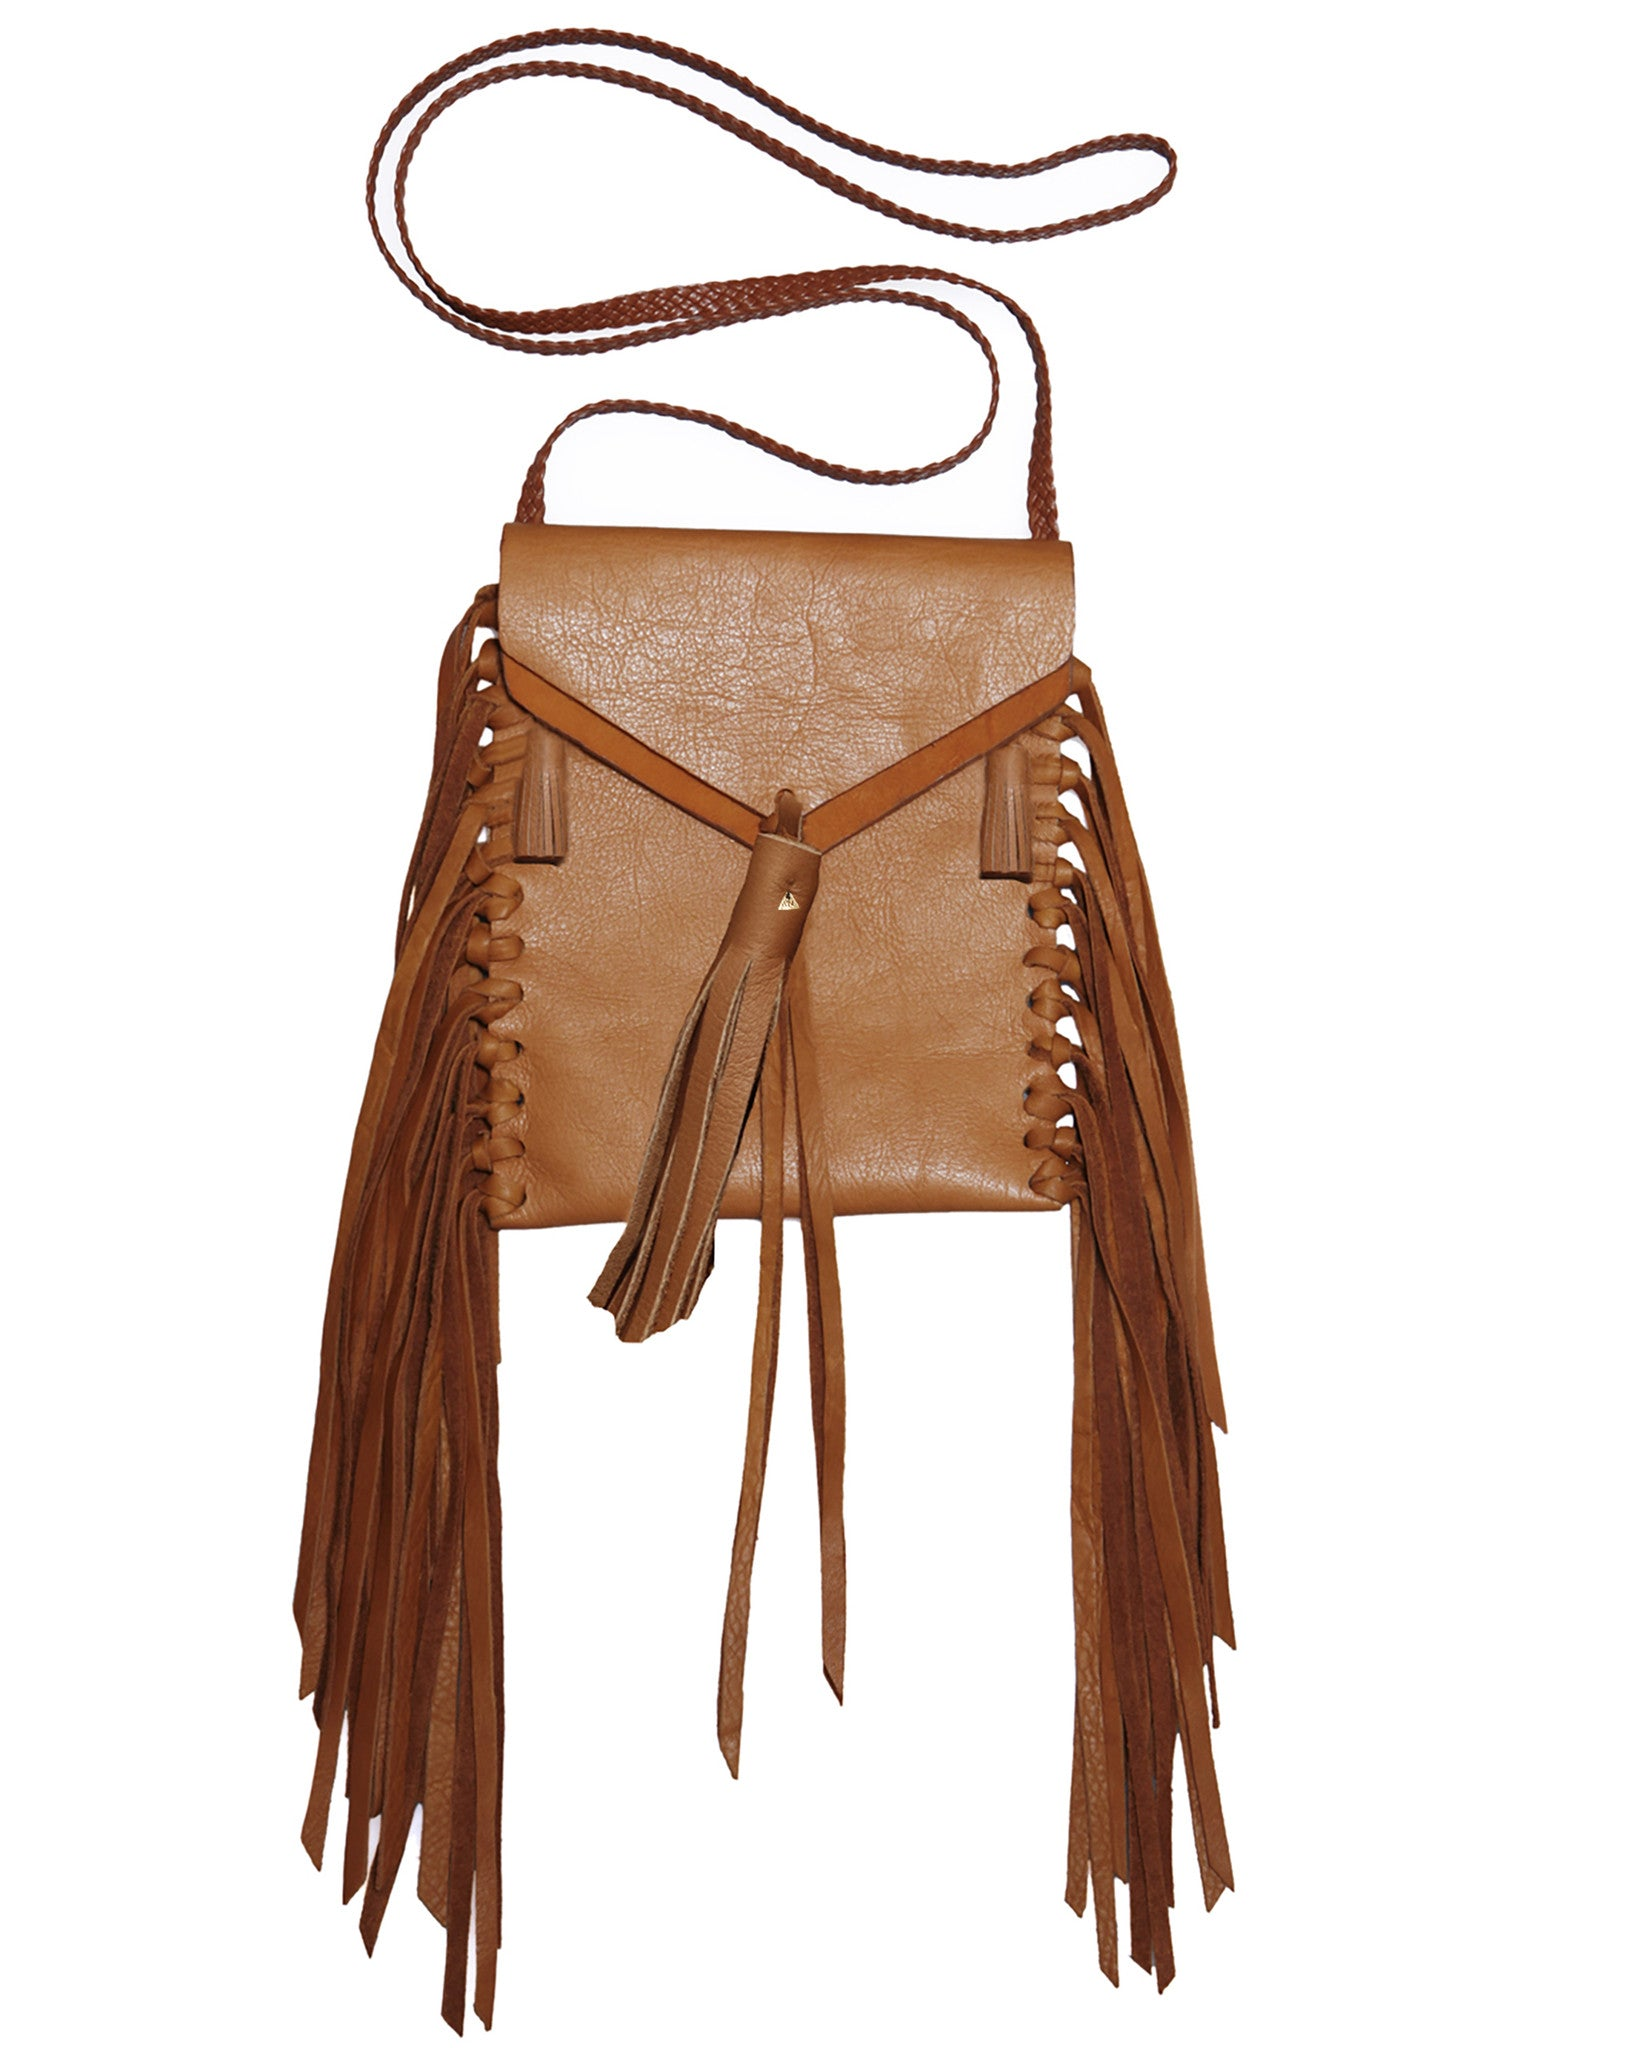 Canyon Carmel Brown Tan Tobacco Bag Wendy Nichol Leather Luxury Handbag Purse Designer Handmade in NYC New York City Small Fringe Tassel Tassels Hippie Coachella Native American Tobacco Simple Long Vertical Pouch Braided adjustable Cross Body Strap Fringe side High Quality Leather